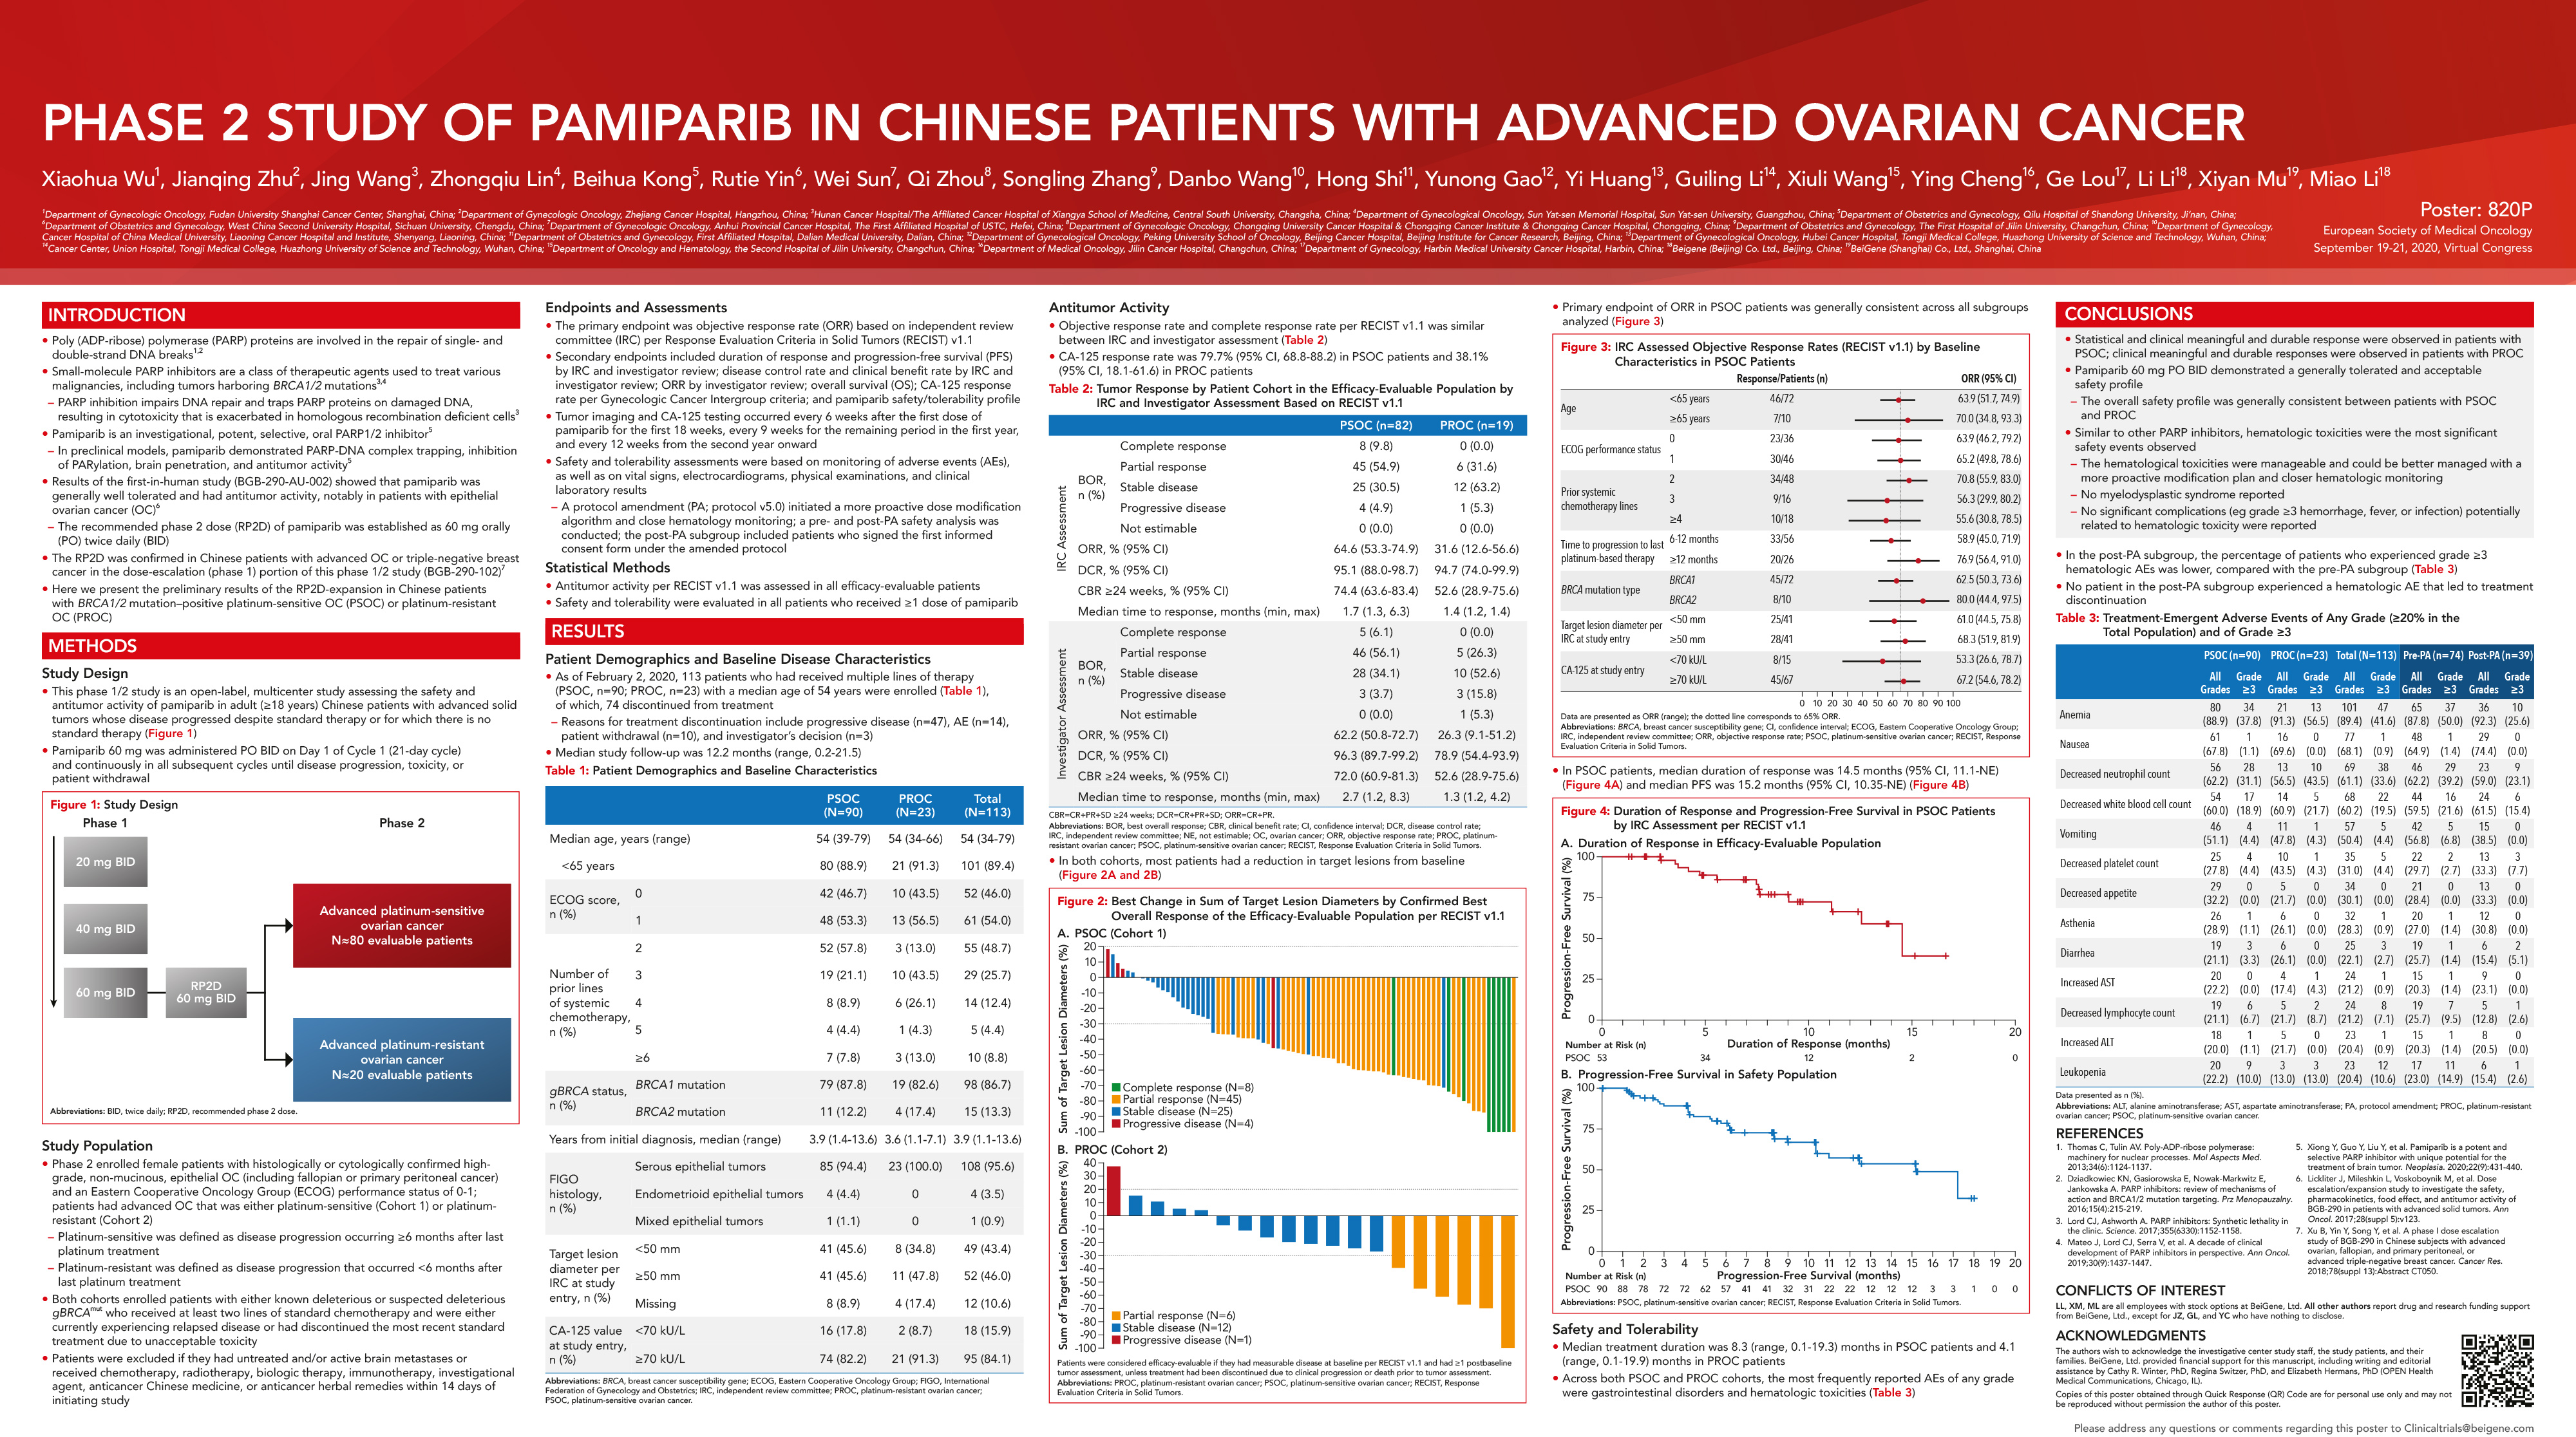 Phase 2 study of pamiparib in chinese patients with advanced ovarian cancer